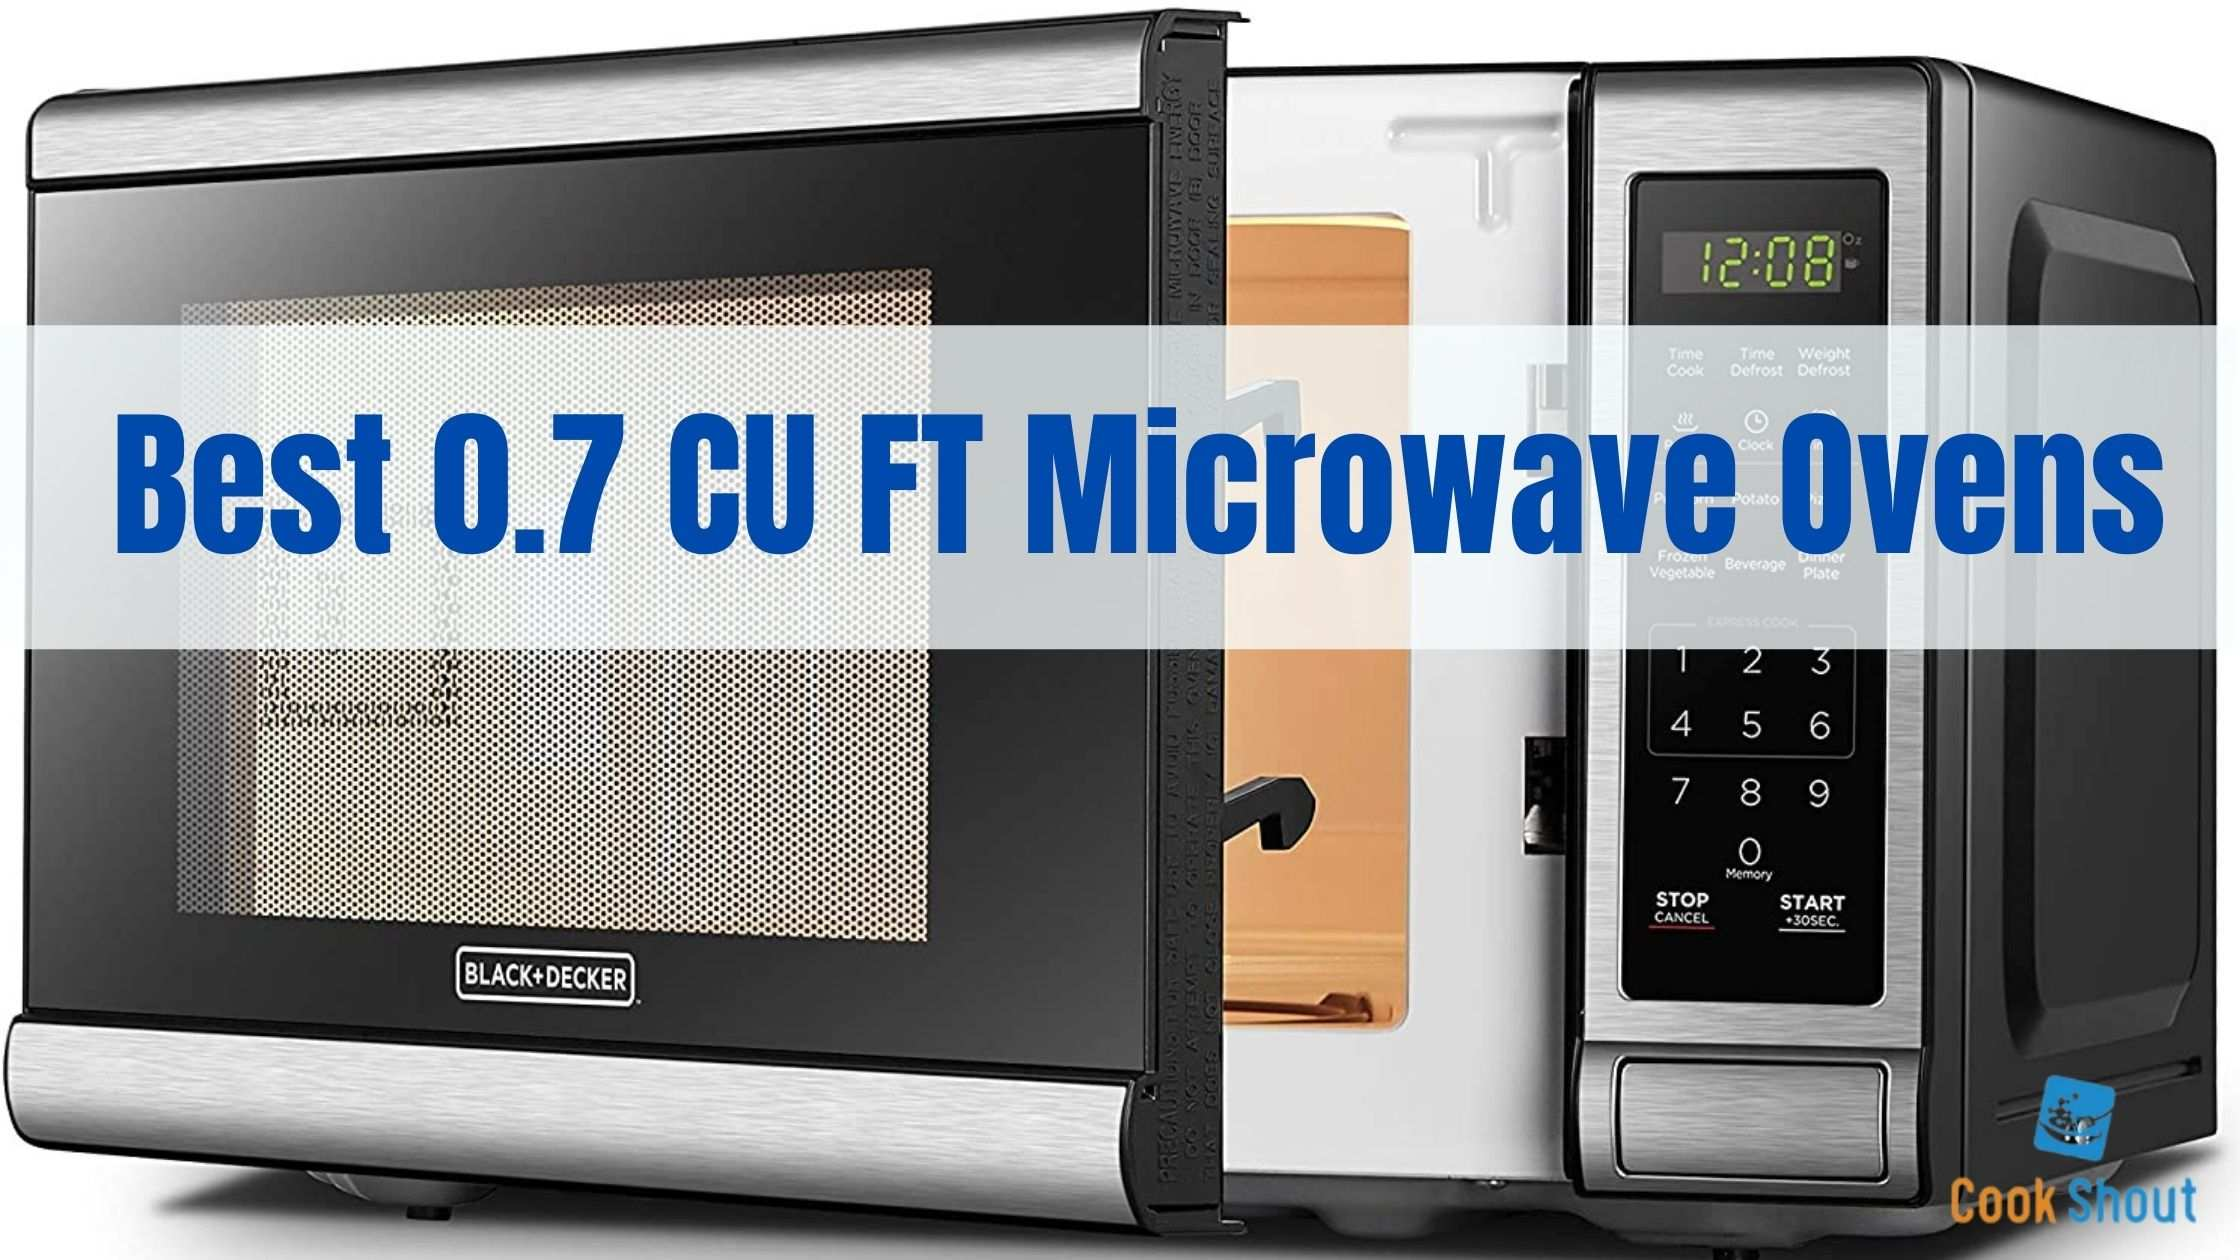 Best 0.7 CU FT Microwave Ovens 2021